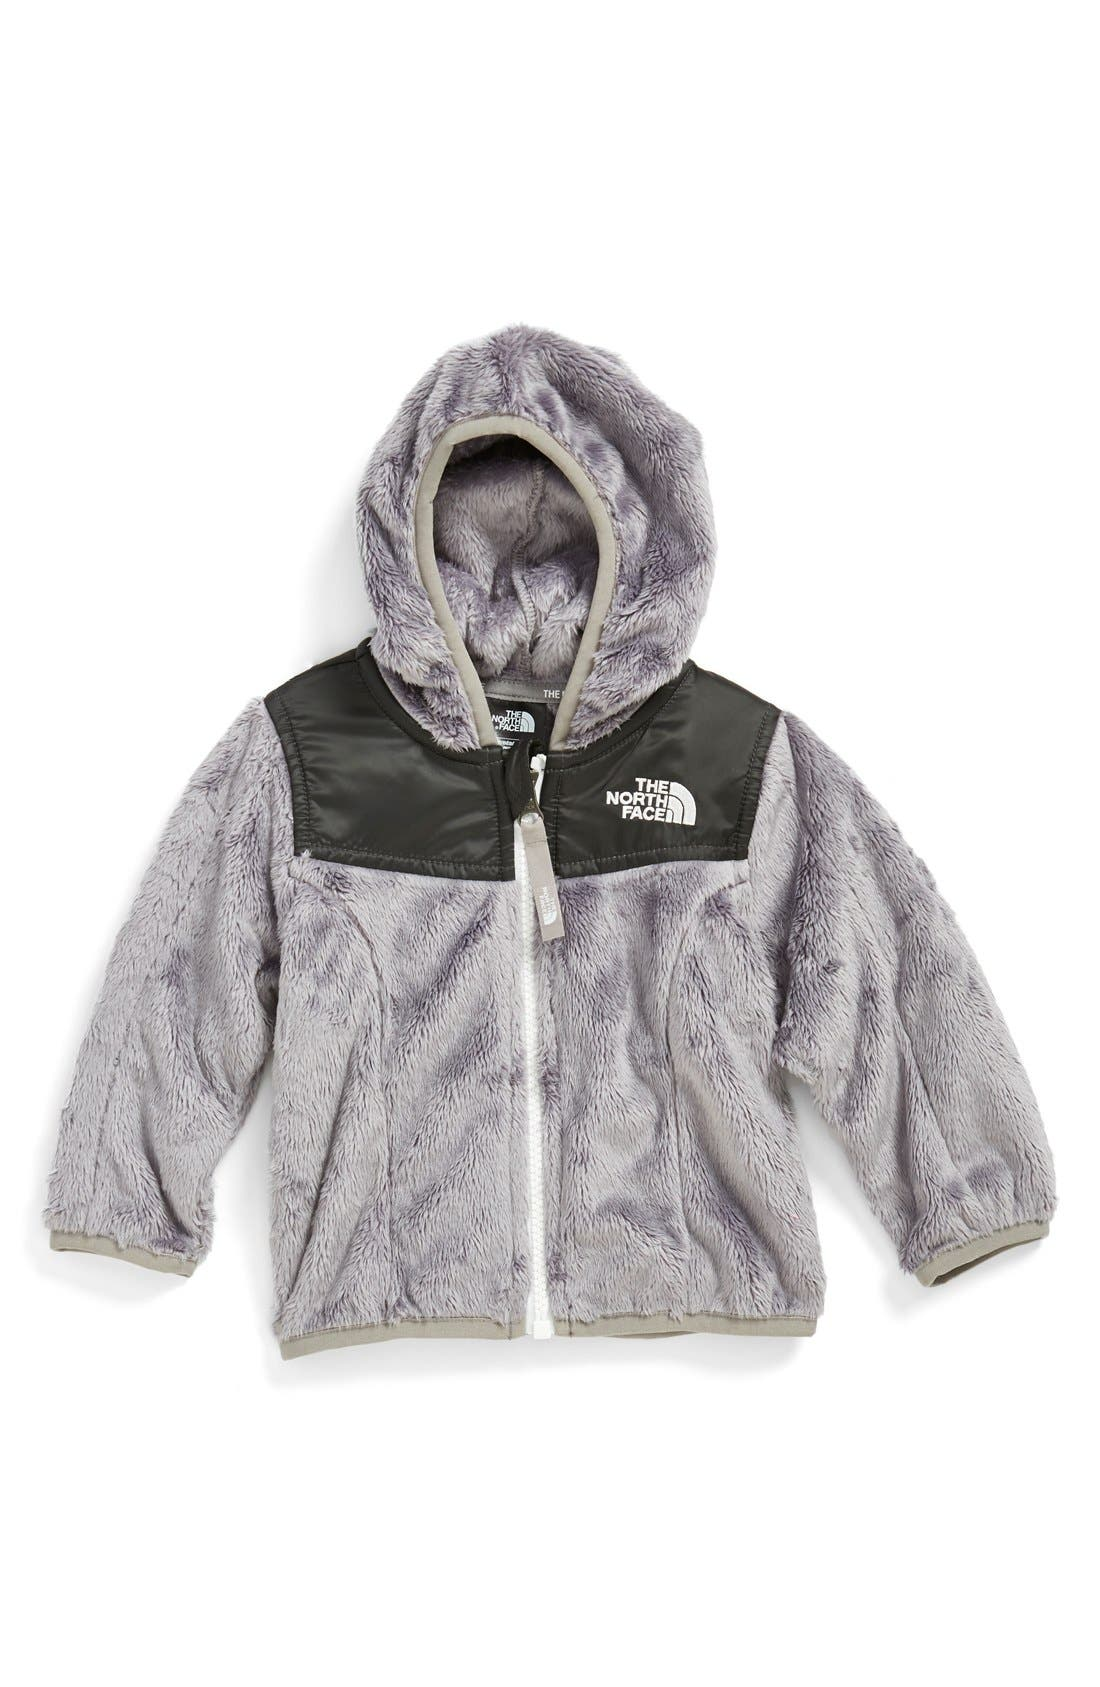 THE NORTH FACE, 'Oso' Fleece Hoodie, Main thumbnail 1, color, 020